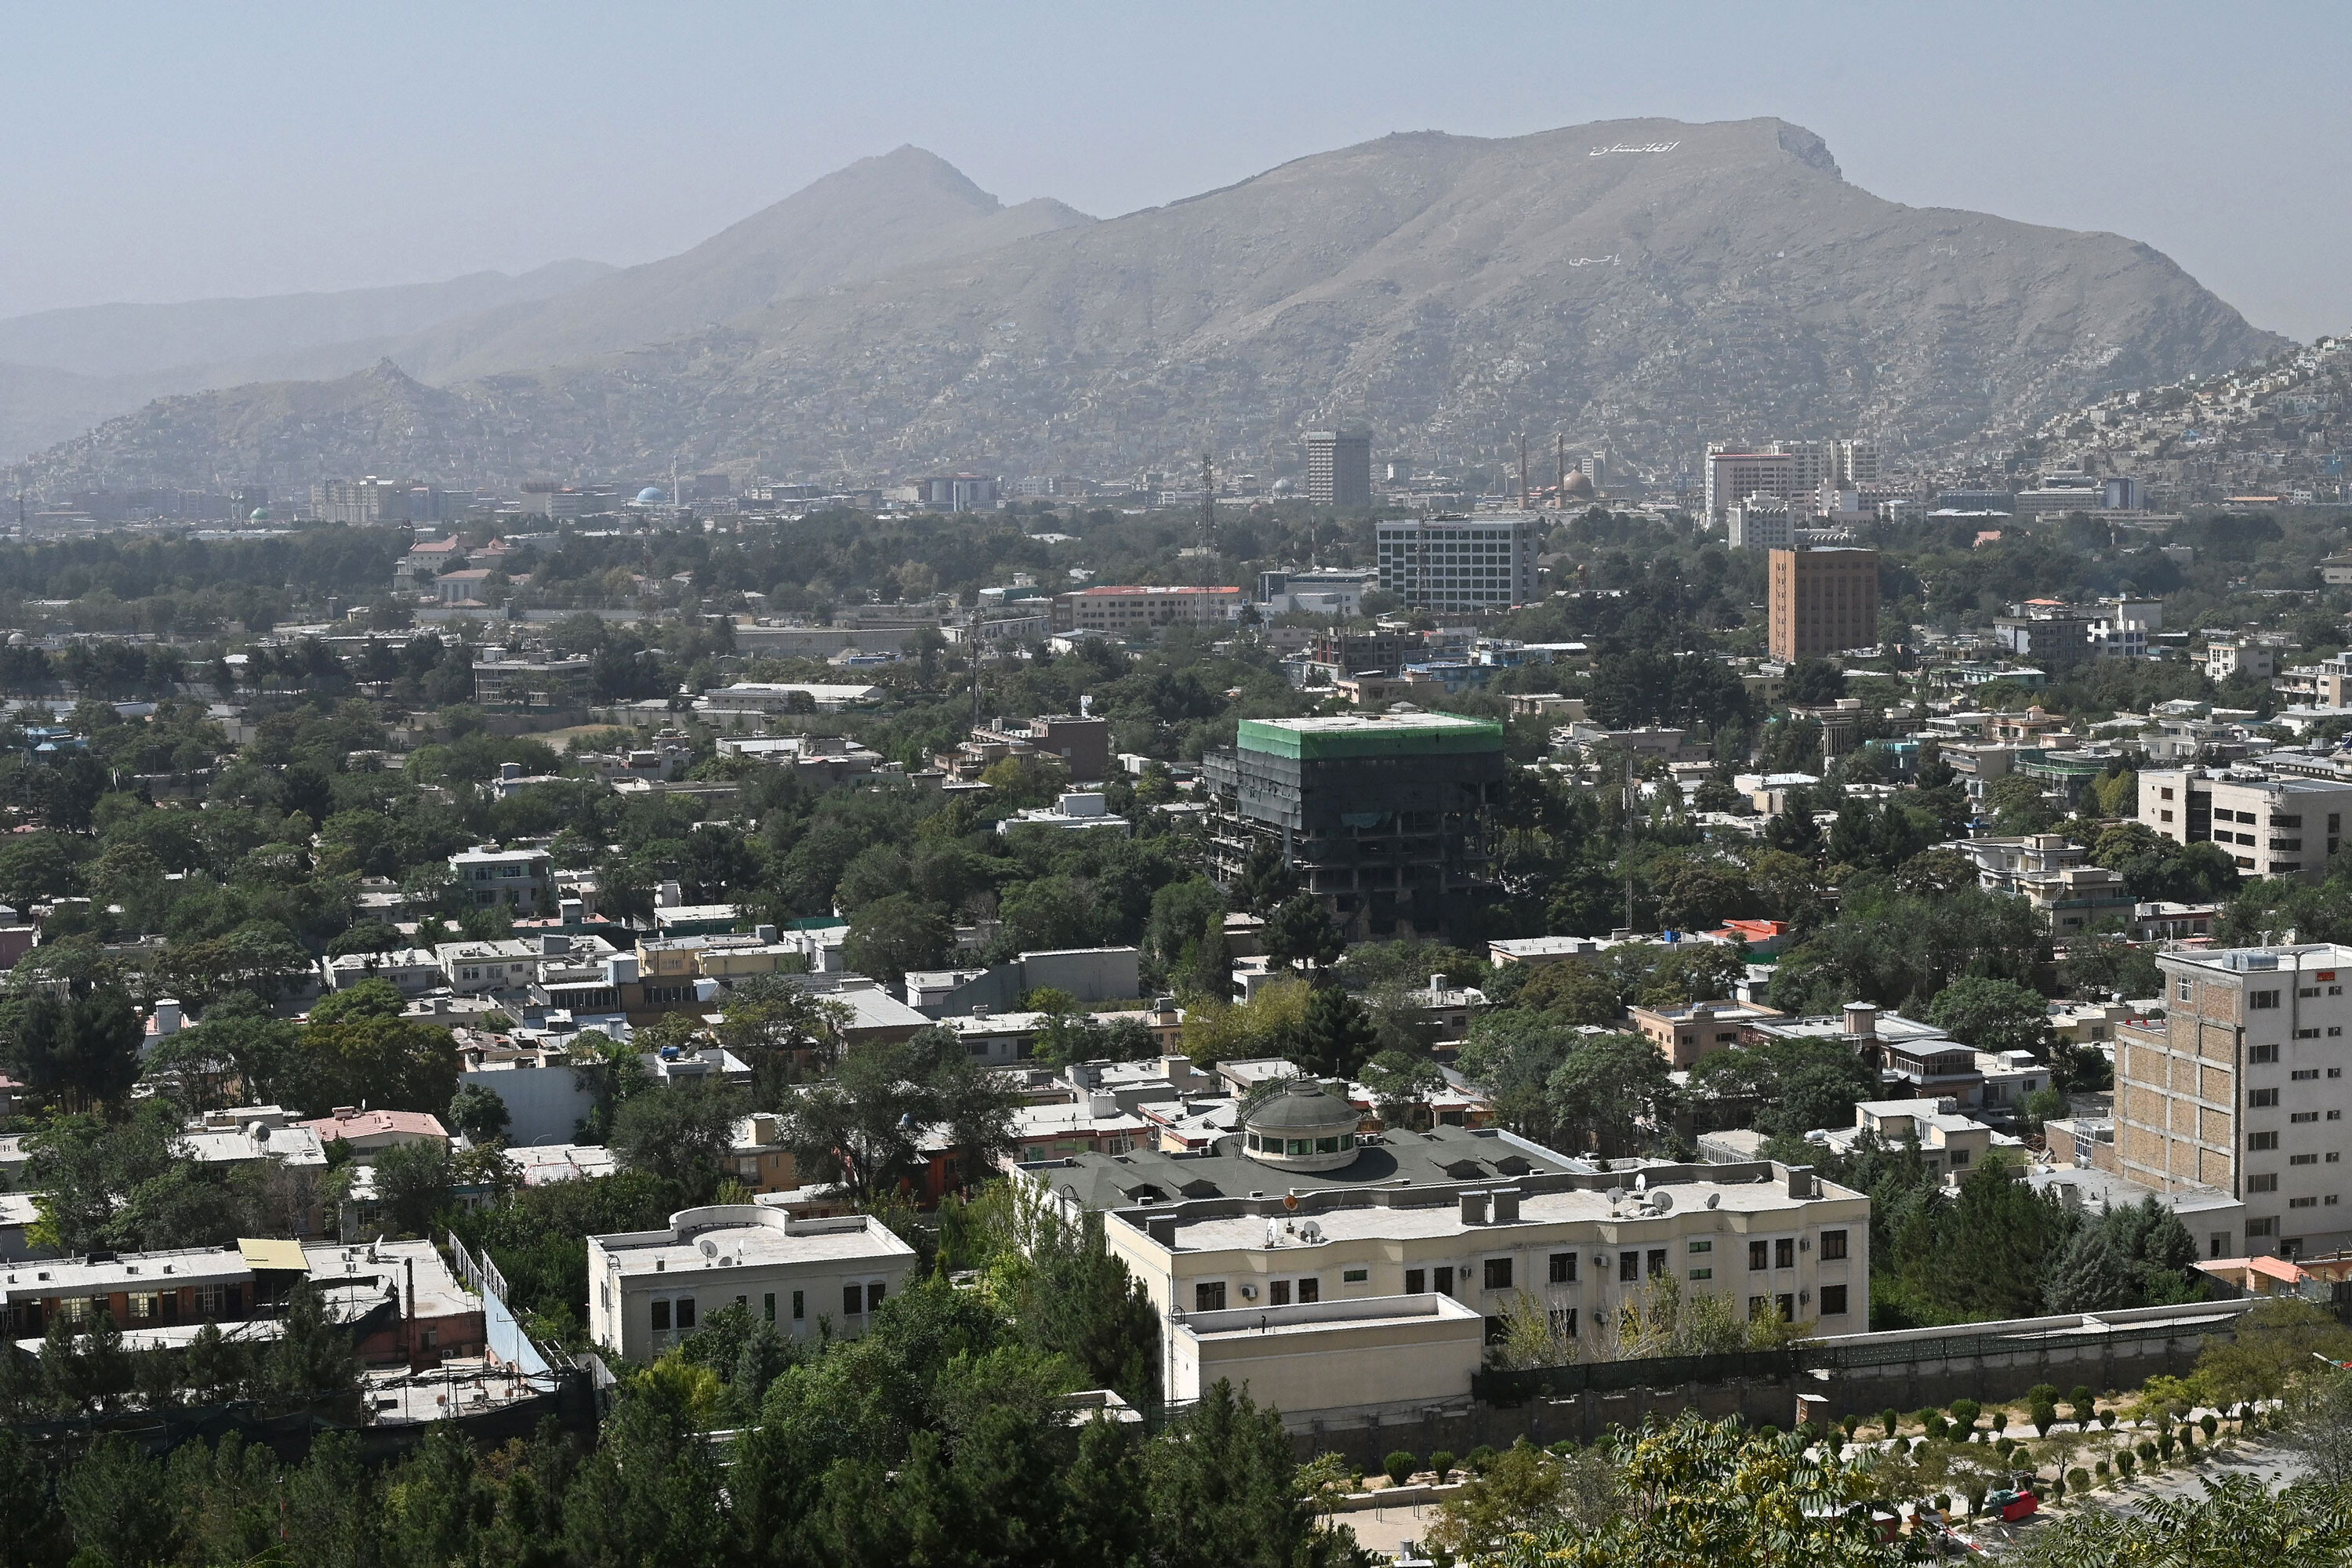 Western news outlets are working to evacuate local journalists from Afghanistan